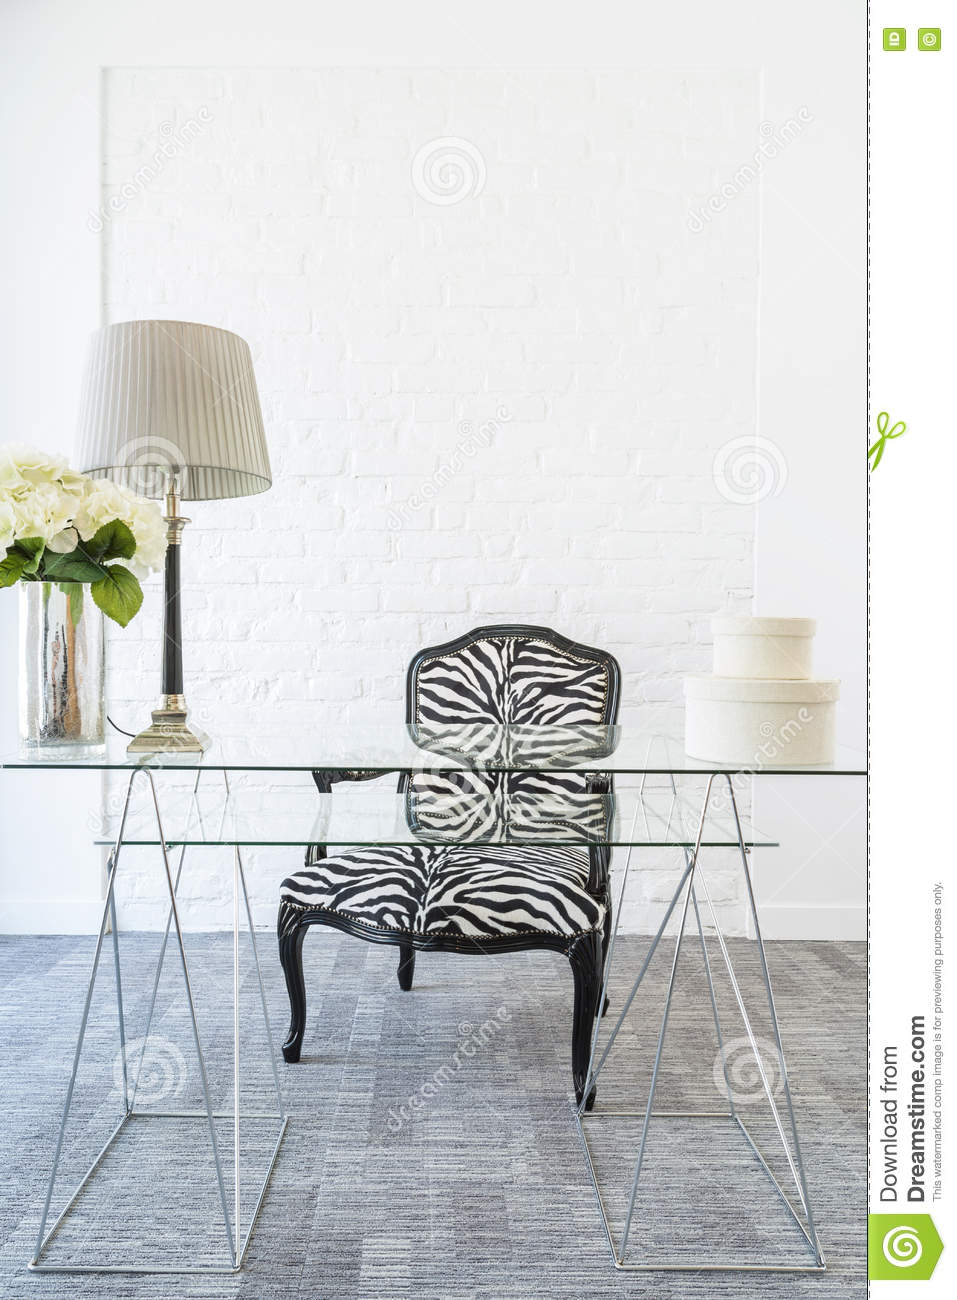 Light Interior With Glass Table, New Chair With Zebra Pattern And  Decorative Brick Wall